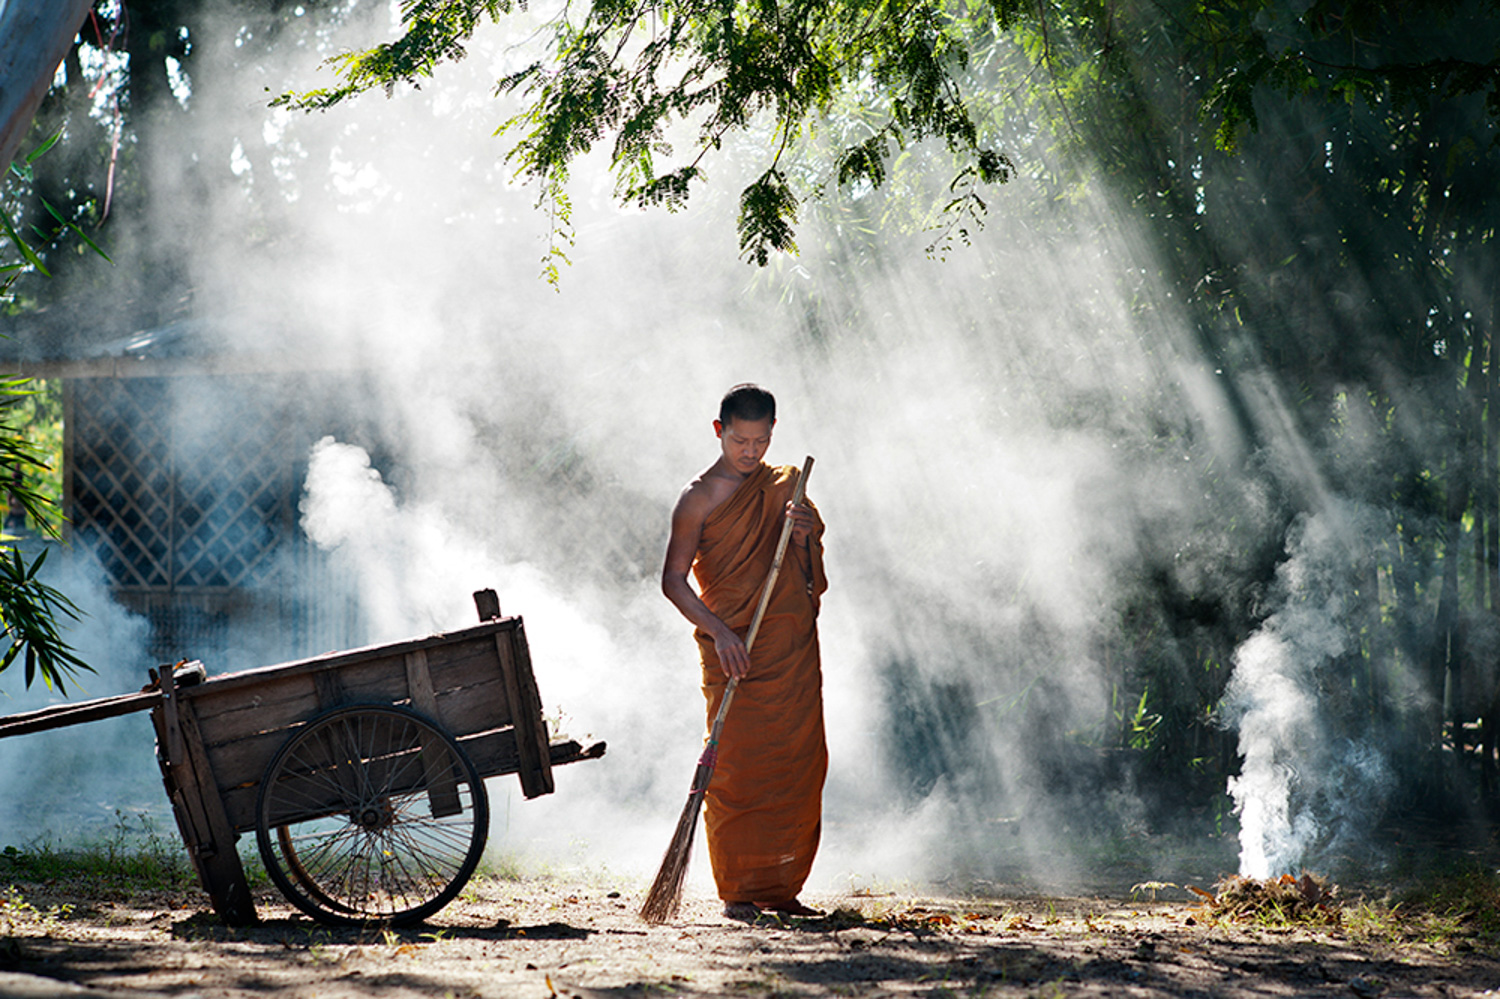 Buddhist Monk Yard Work 15 Common Portrait Mistakes to Avoid